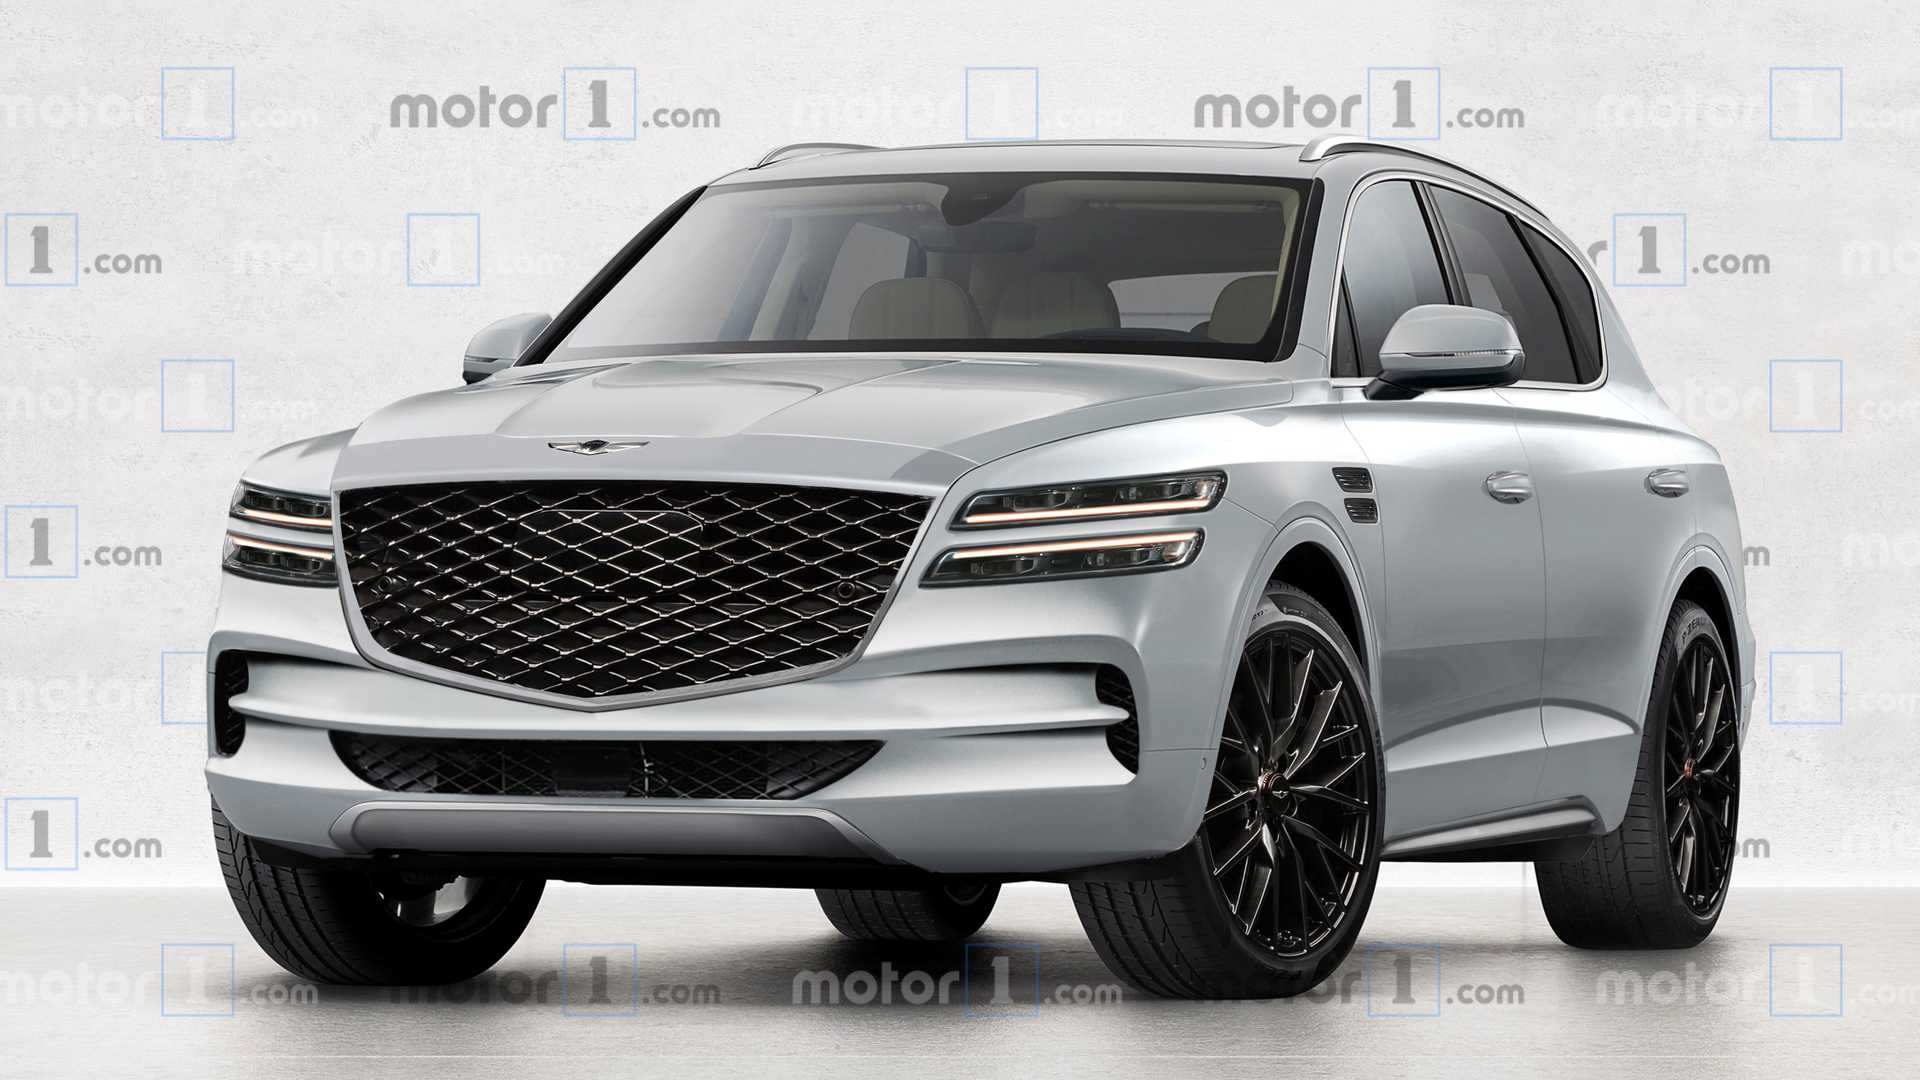 2021 Genesis Gv80 Rendered As Production Model Looks Interesting